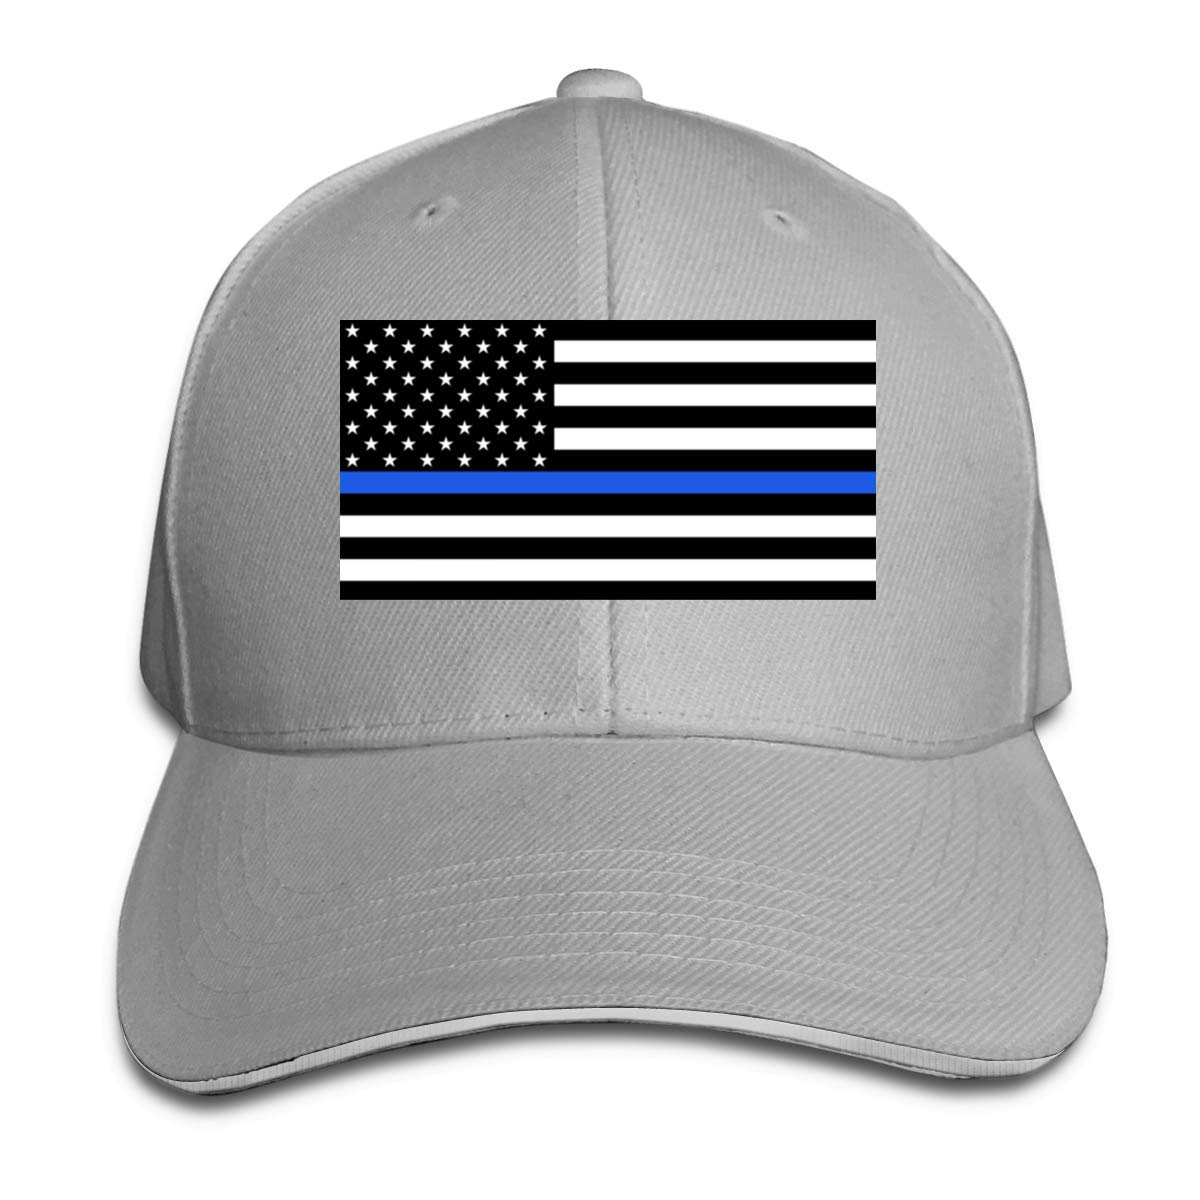 shixiaogood Adult Unisex Fashion Support The Police Thin Blue Line American Flag Adjustable Sandwich Baseball Caps for Men/&Womens